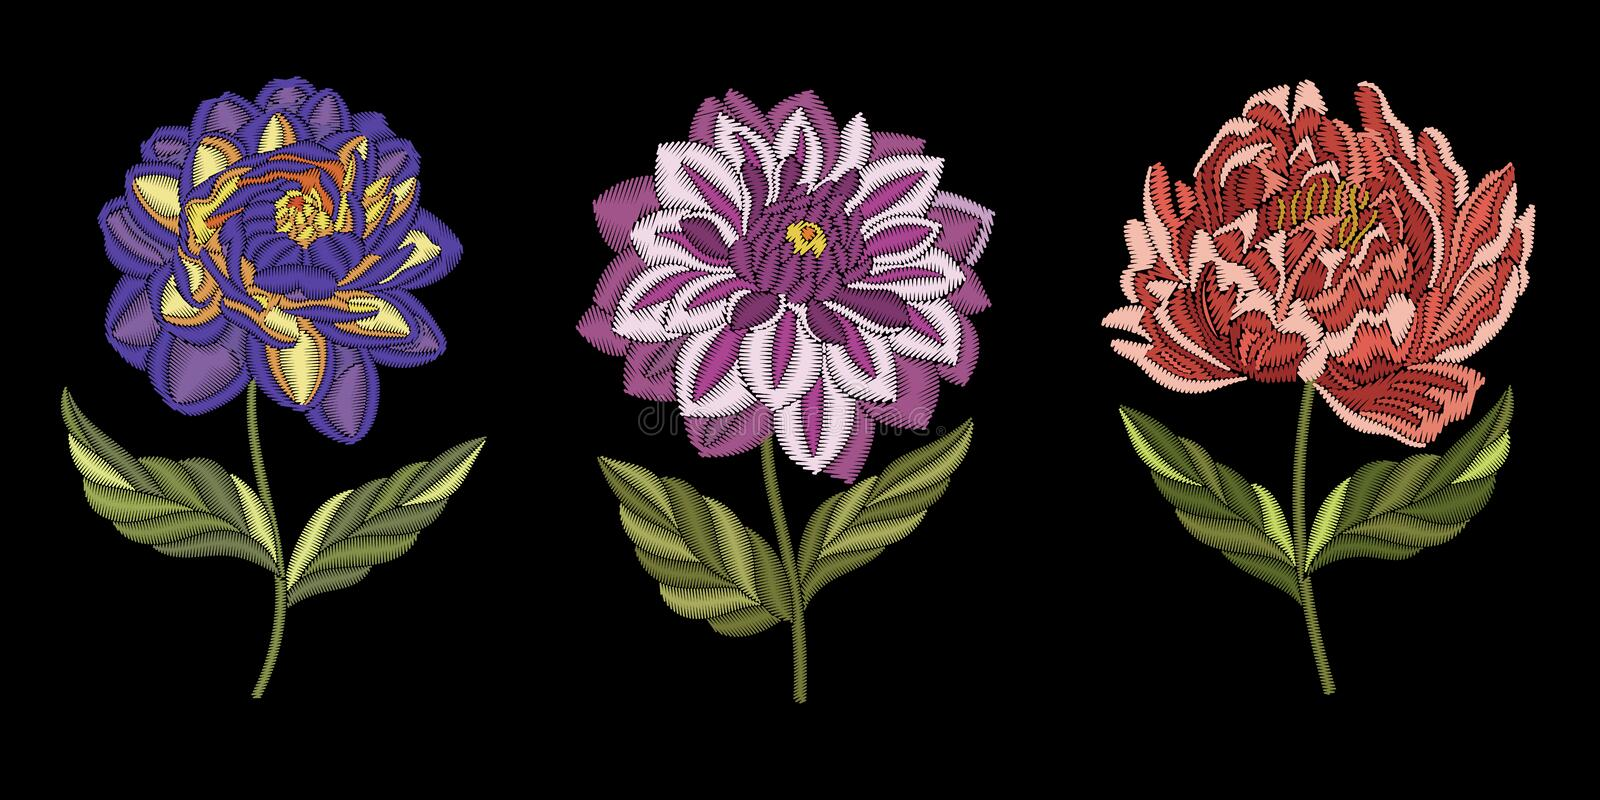 Embroidery floral fashion design royalty free stock photo